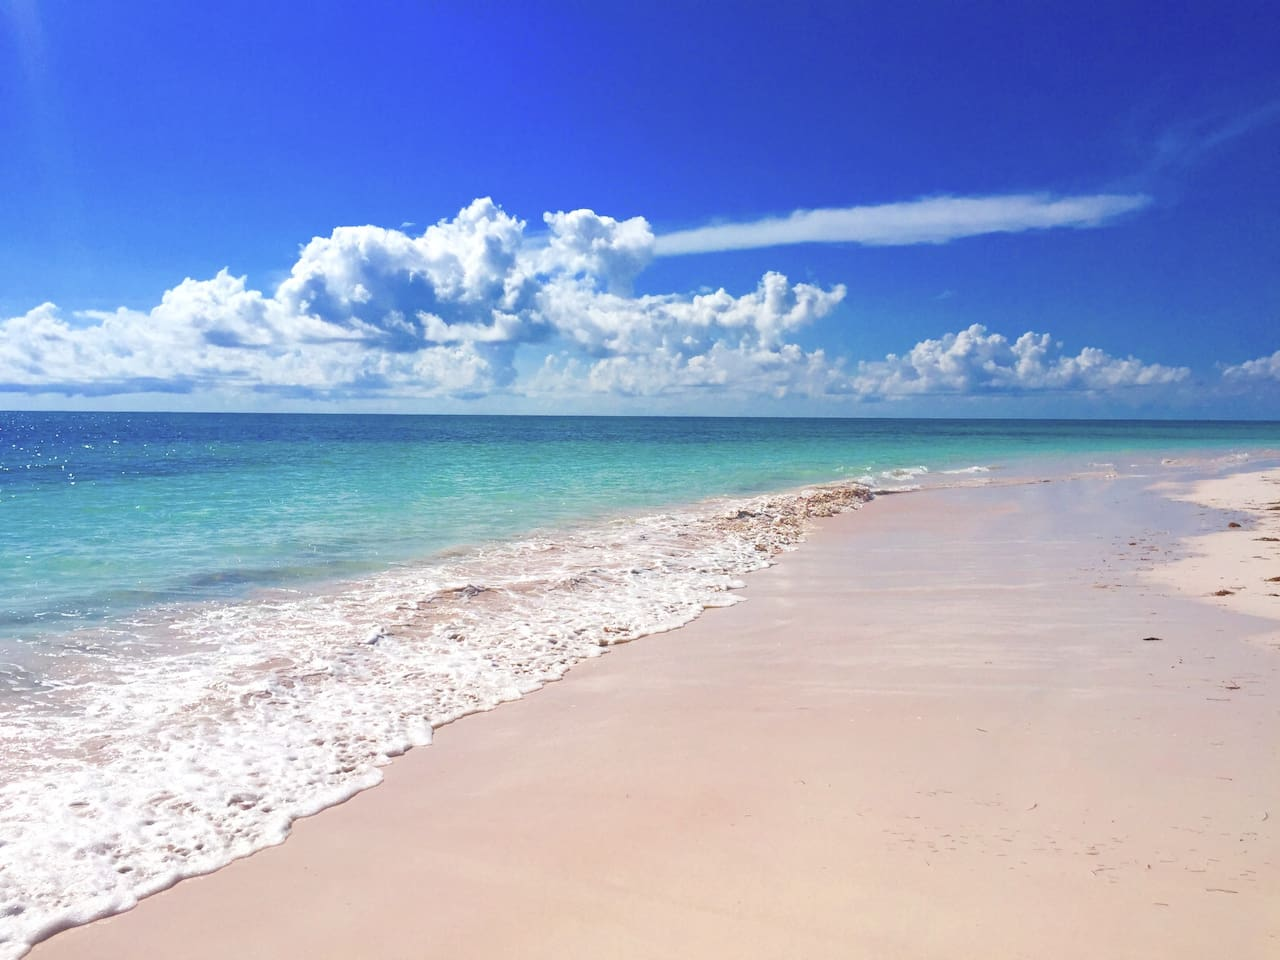 One of the worlds most beautiful beaches right in your back garden! The powder fine pink sand is stunning!